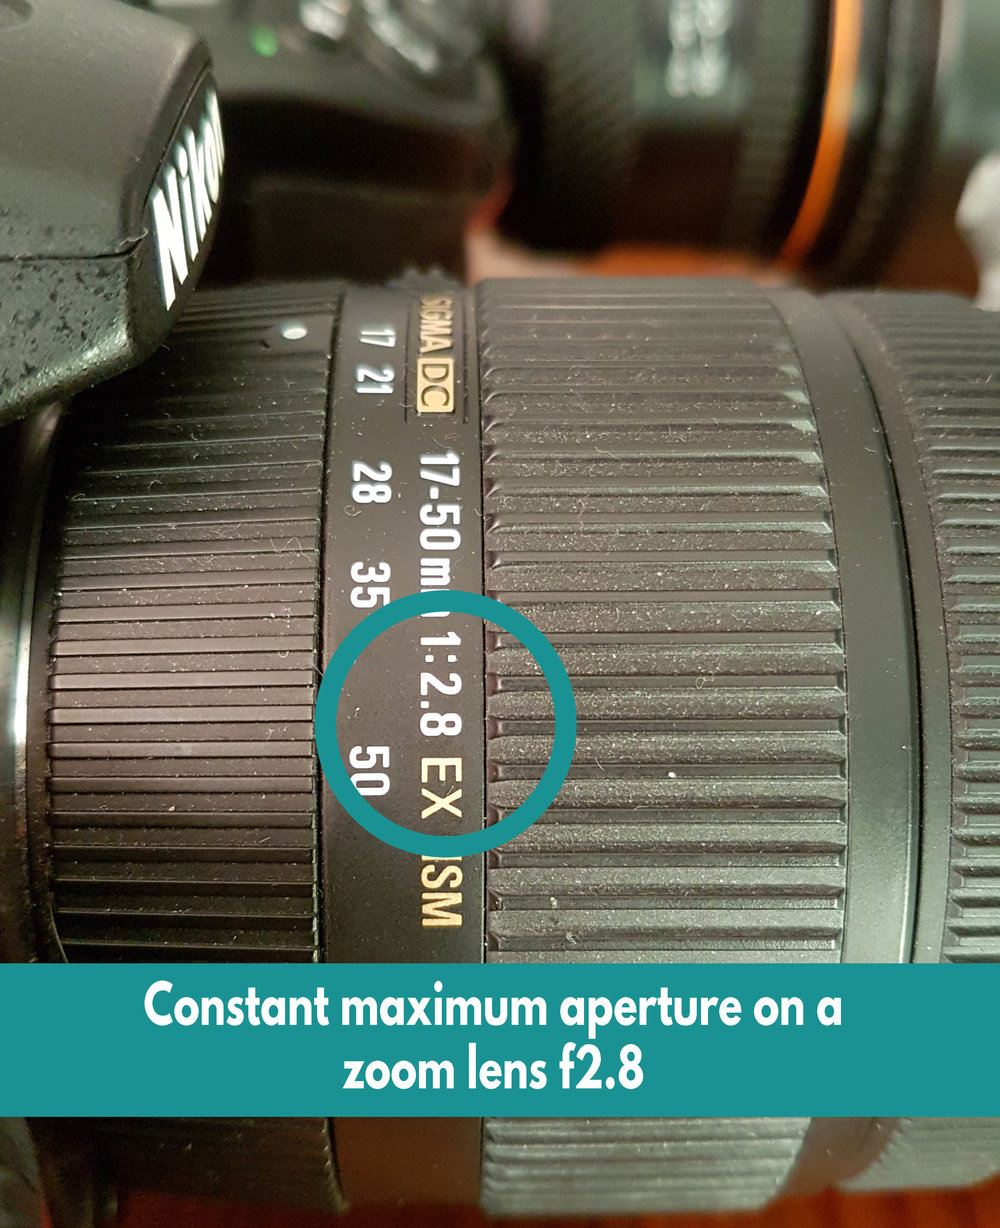 Constant max aperture on zoom 2.8.jpg